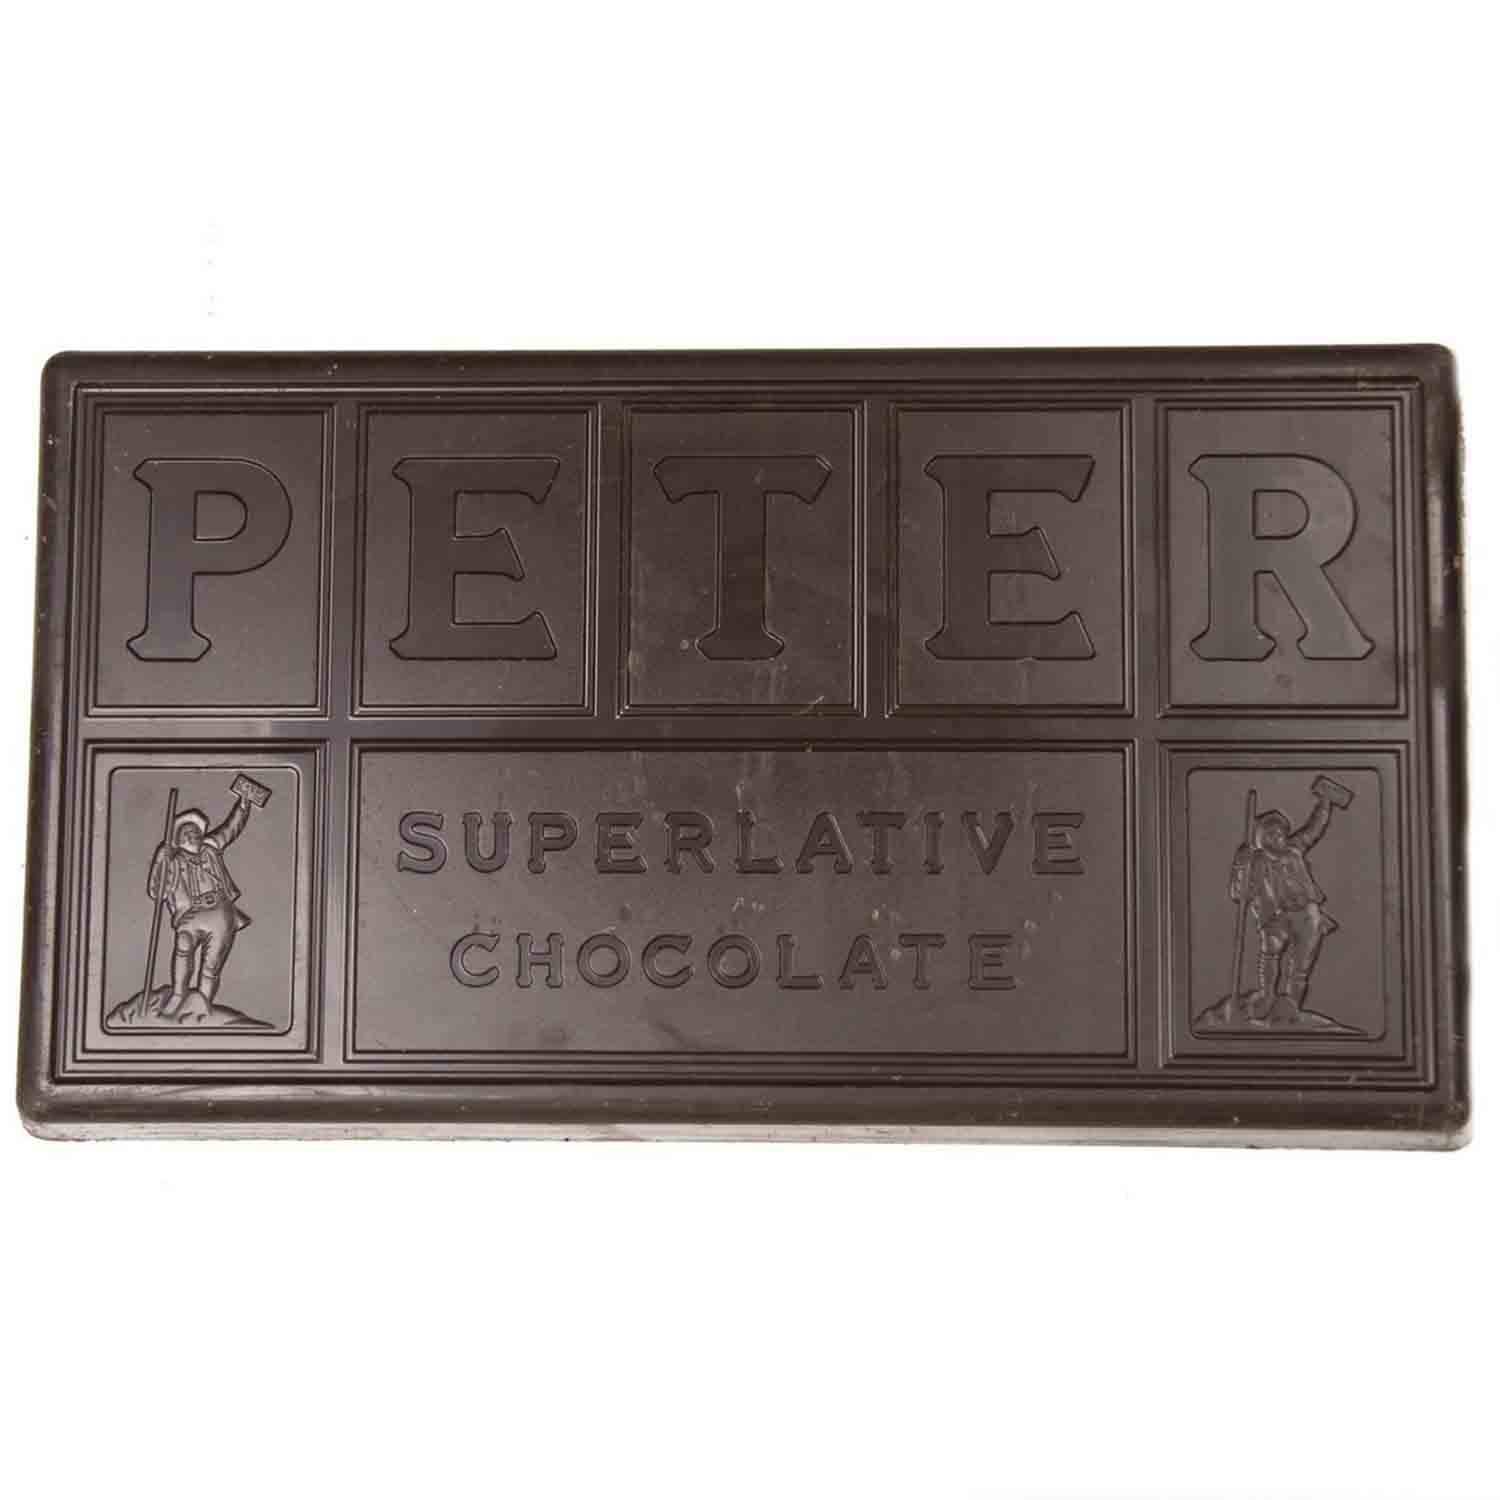 Peter's Burgundy Real Dark Chocolate (Semi-sweet)